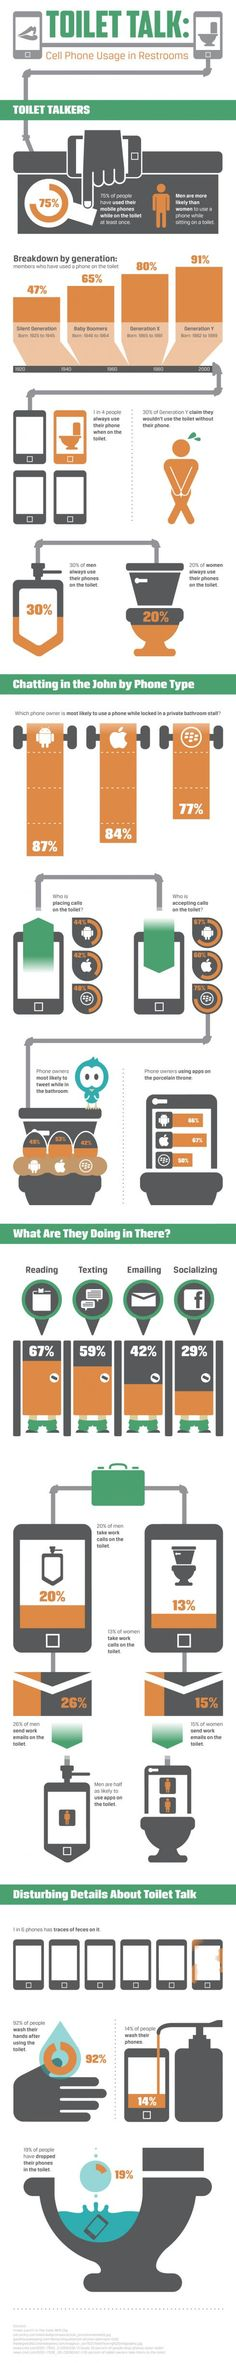 INFOGRAPHIC: TOILET TALK – CELL PHONE USE IN BATHROOMS